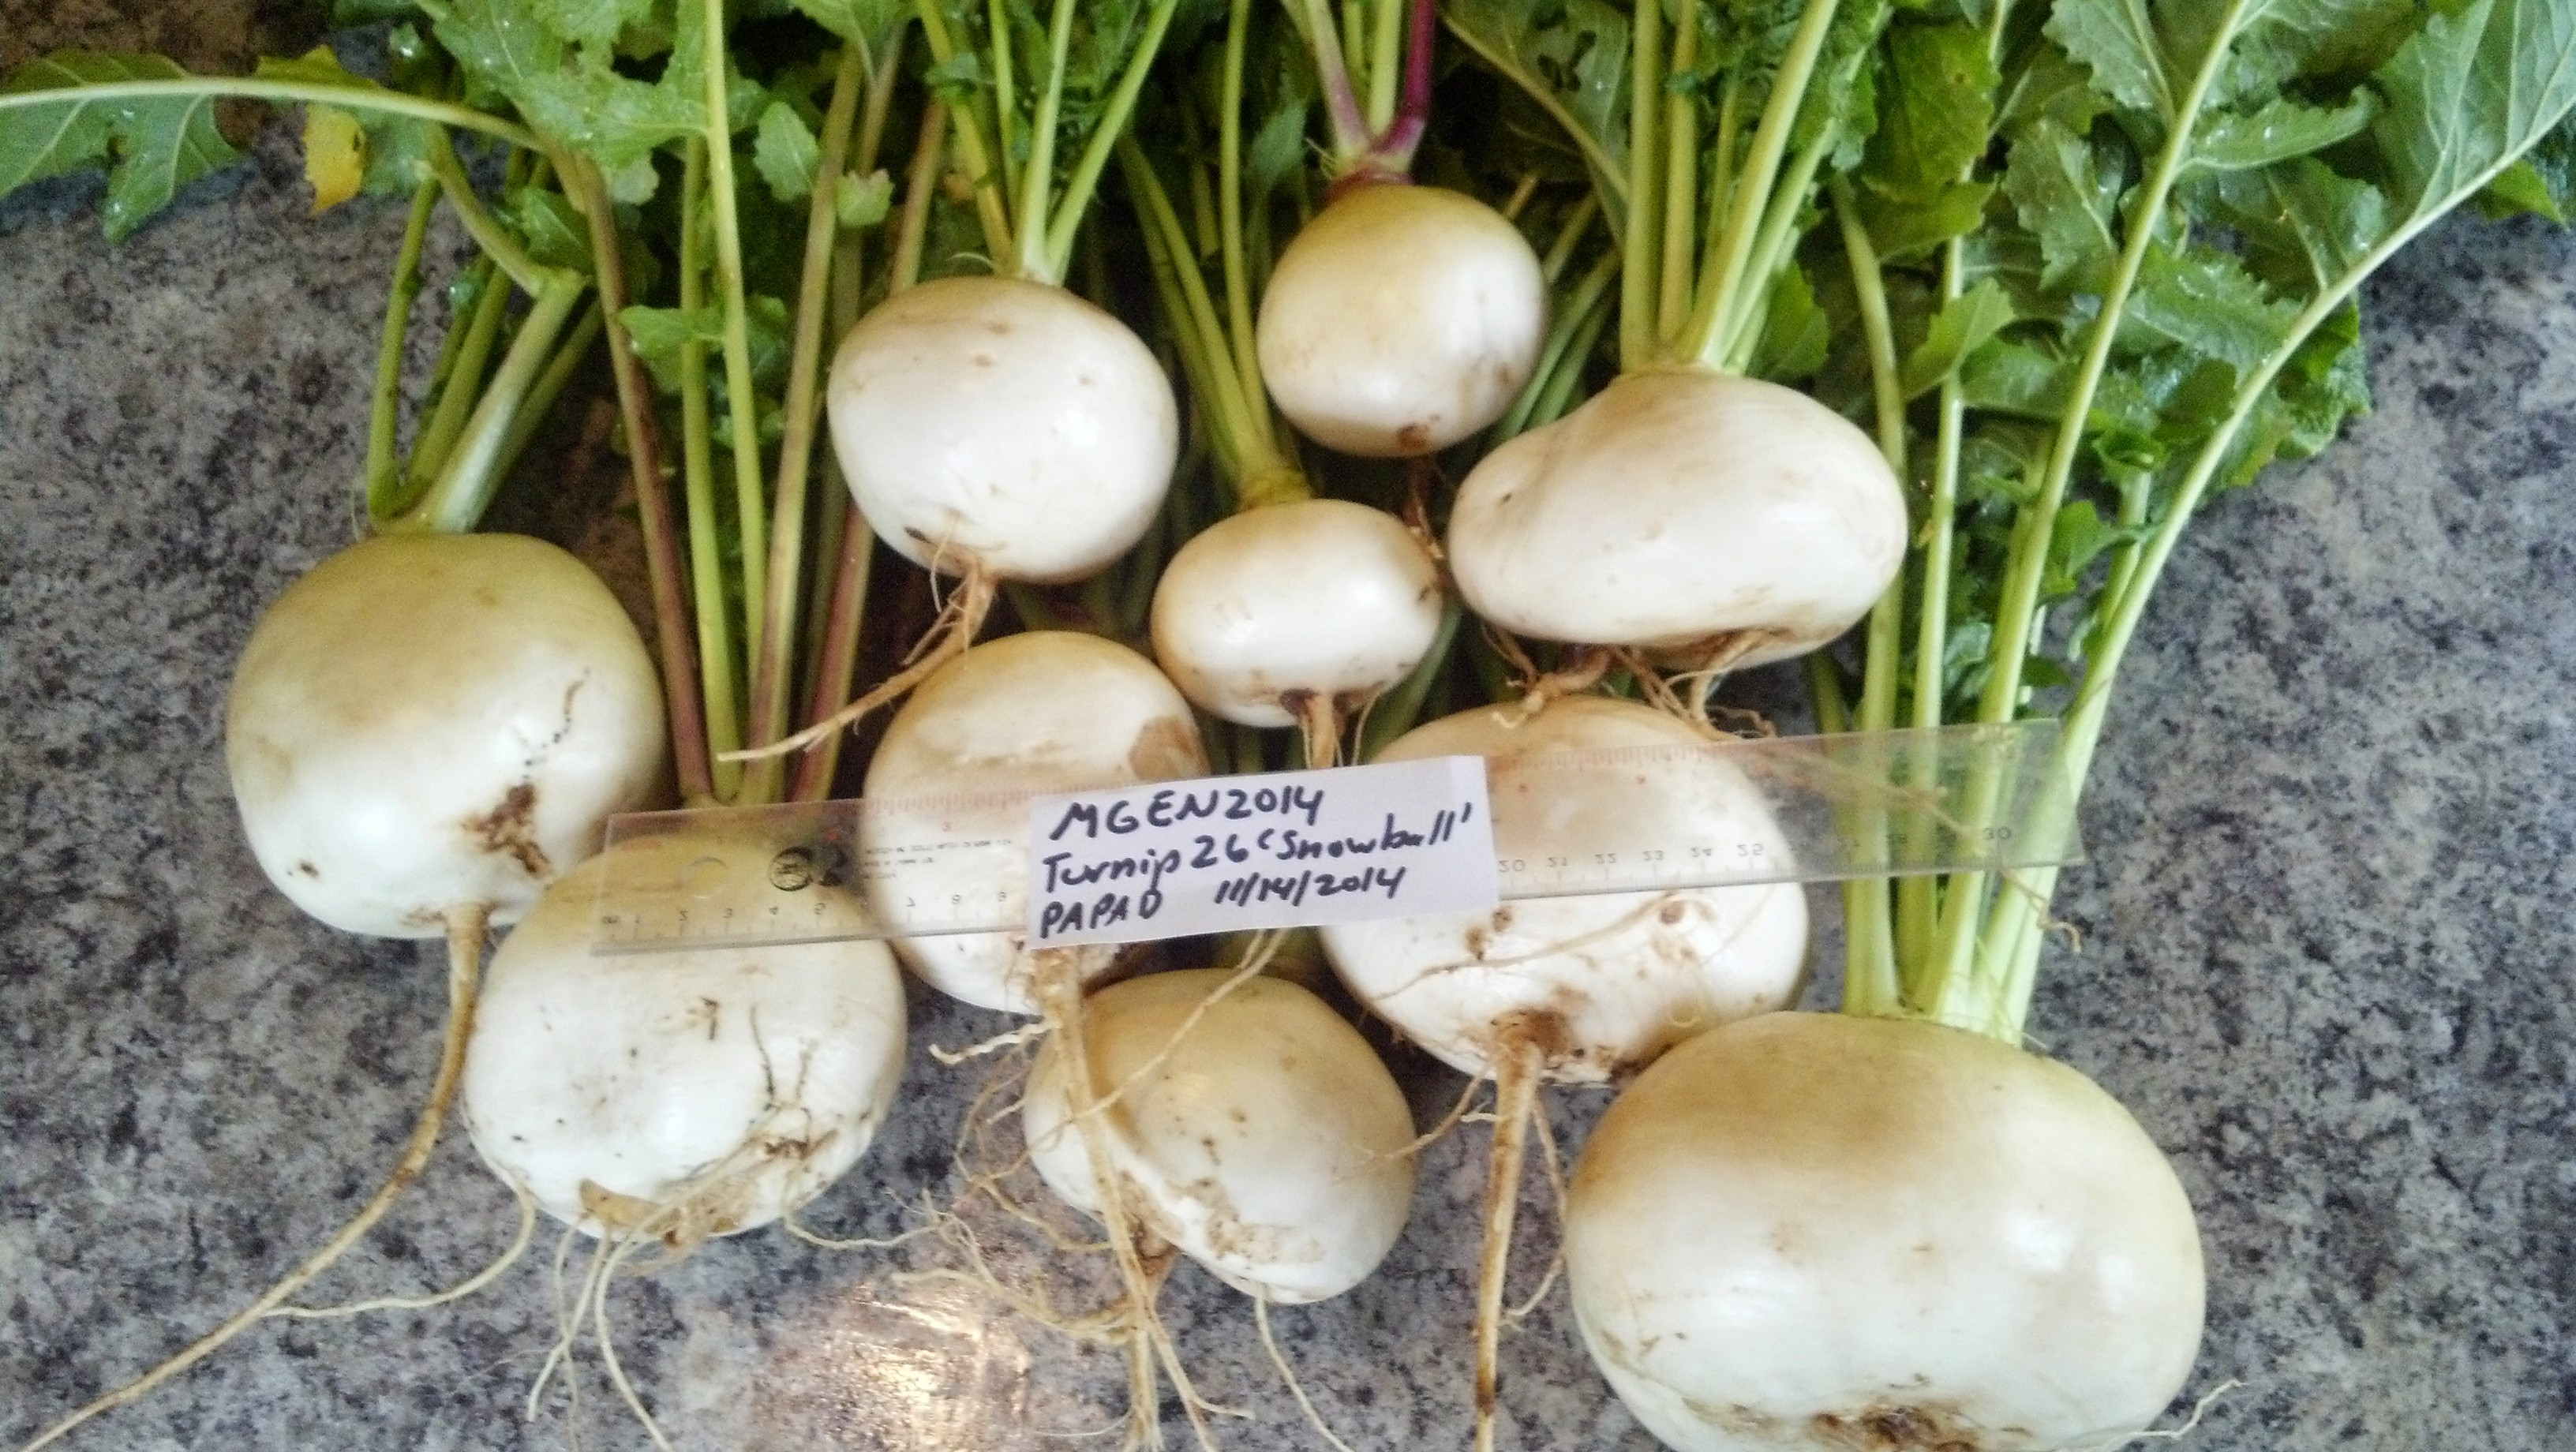 Snowball%20turnips%20greens%20and%20roots[1].jpg